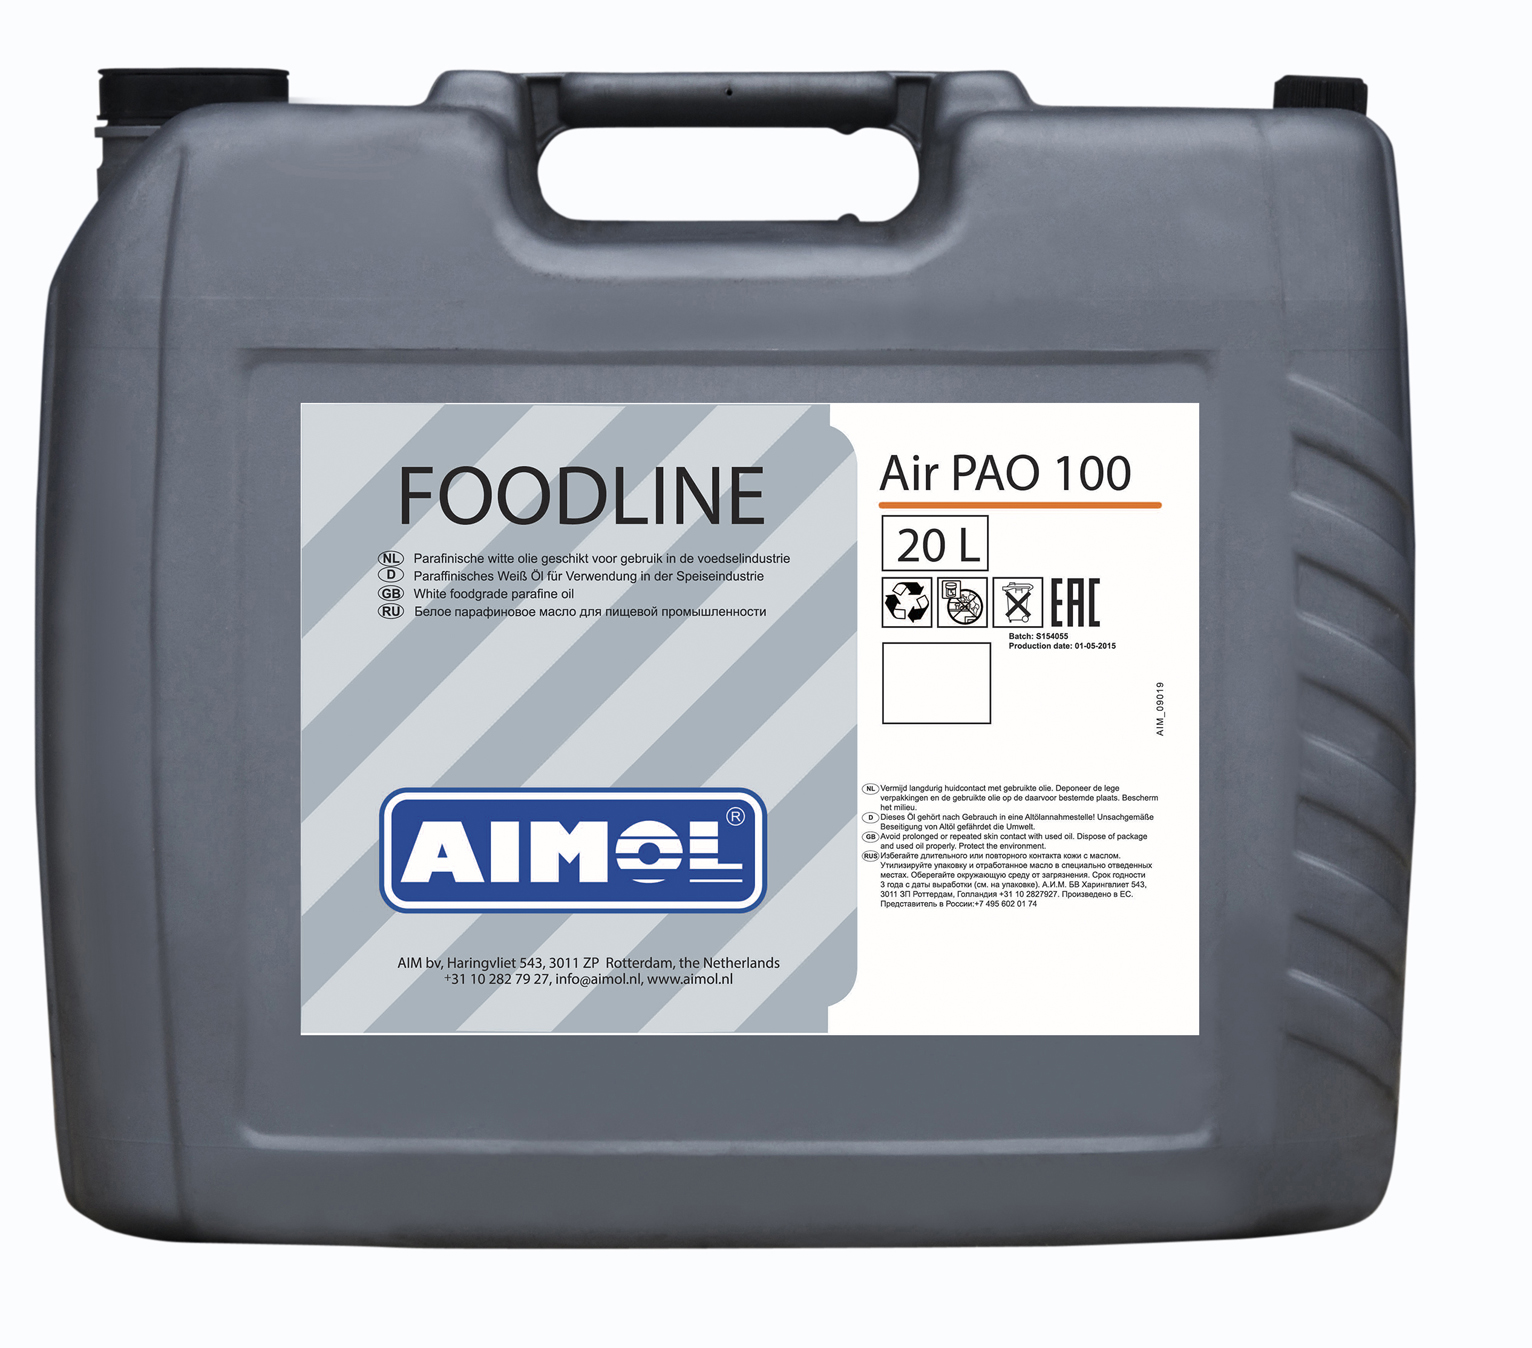 AIMOL-M FOODLINE AIR PAO 100(AIMOL-M FOODMAX AIR PAO 100)